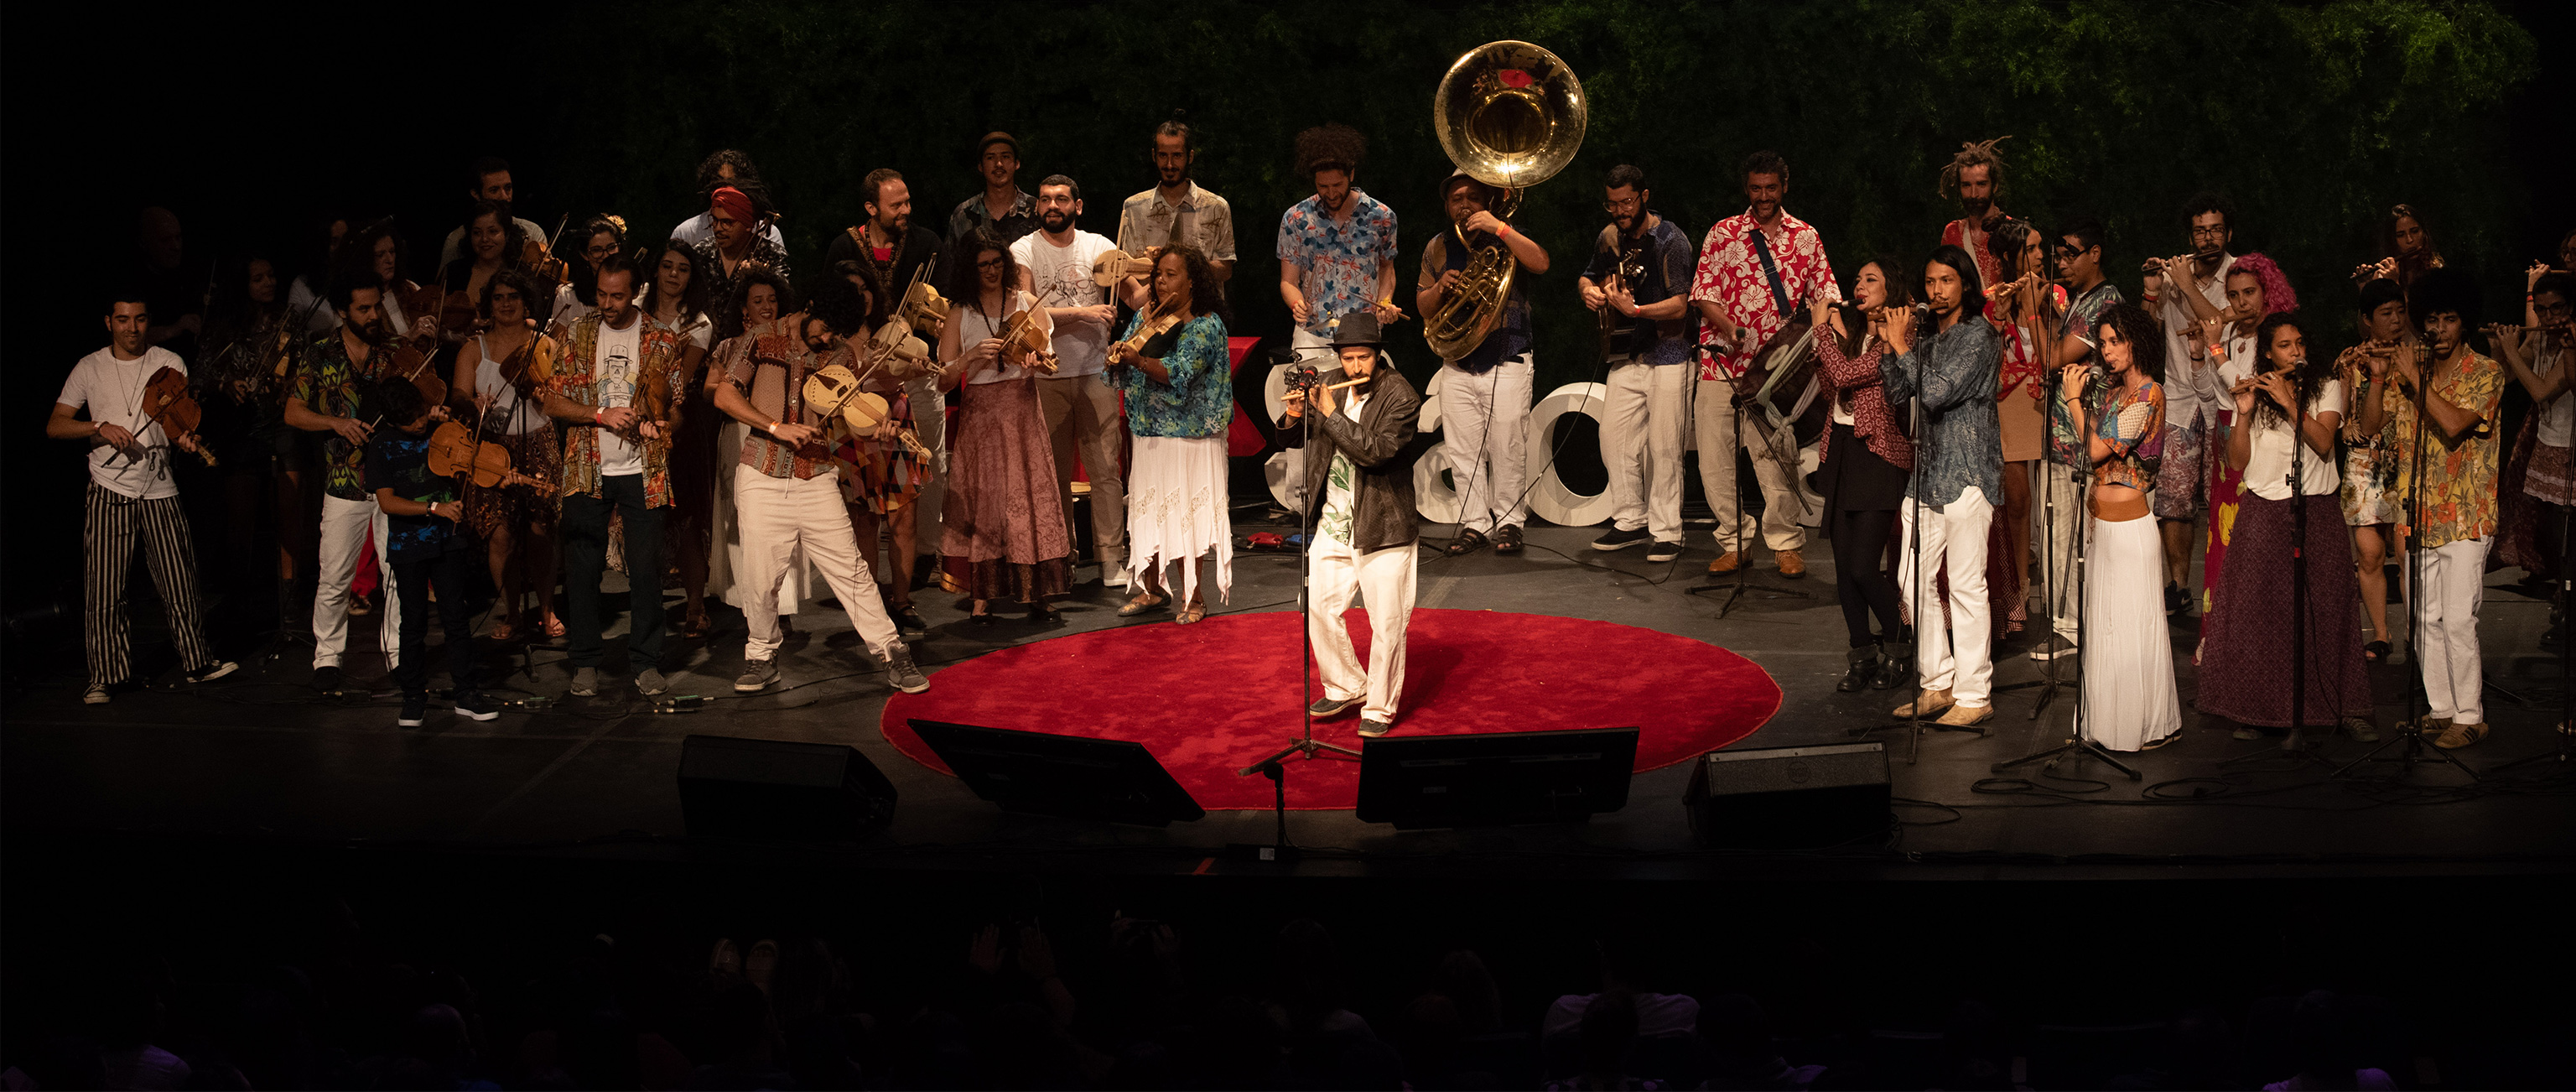 A large orchestral group of artists on stage at TEDxSaoPaulo